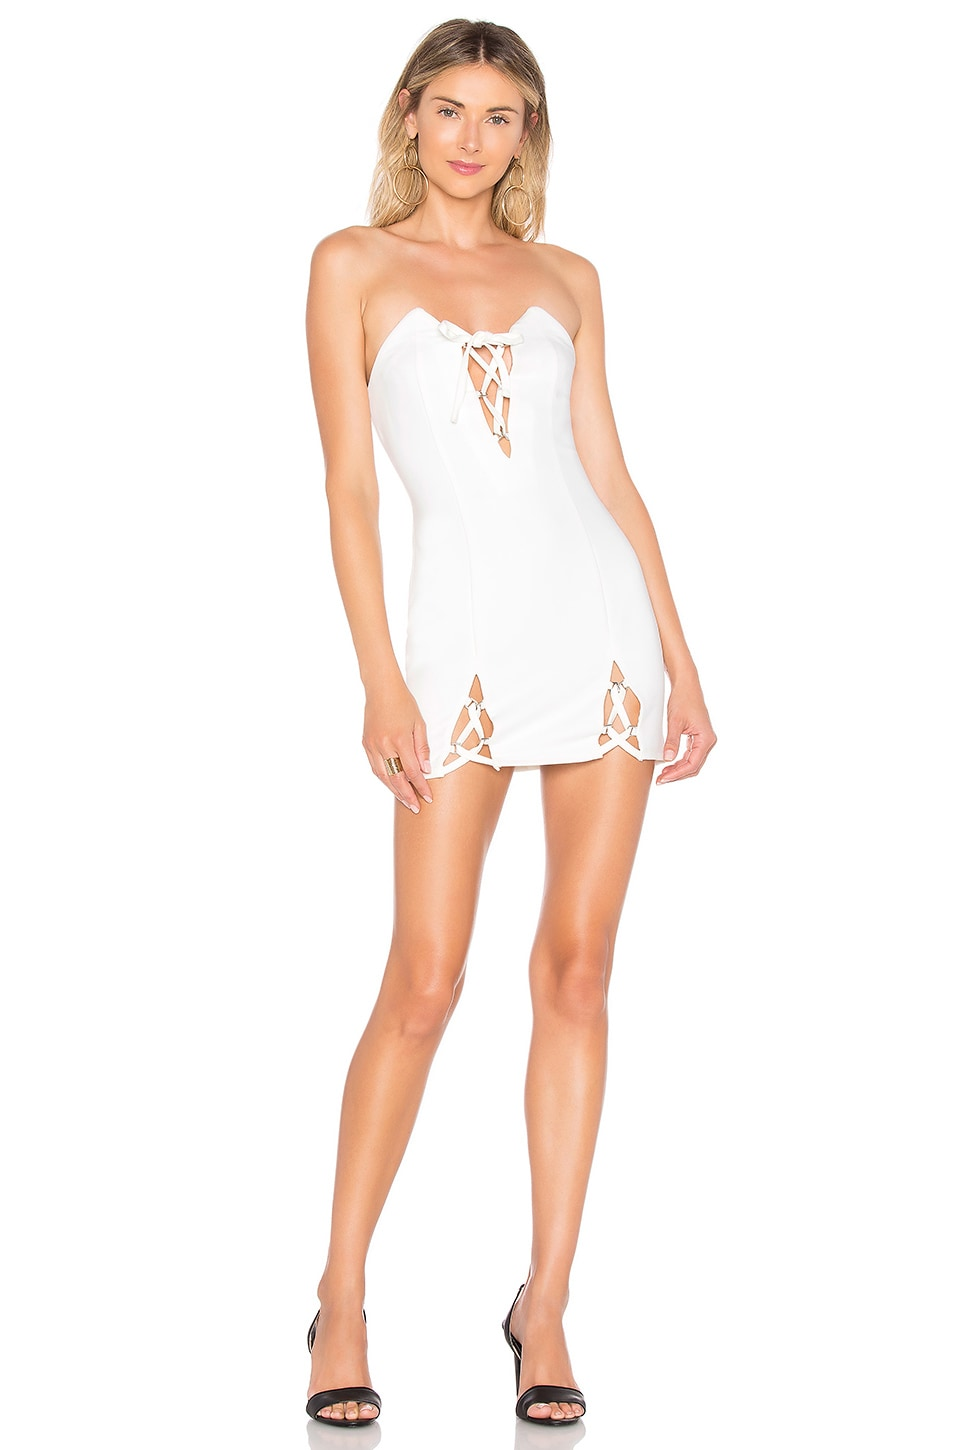 h:ours Haider Mini Dress in White